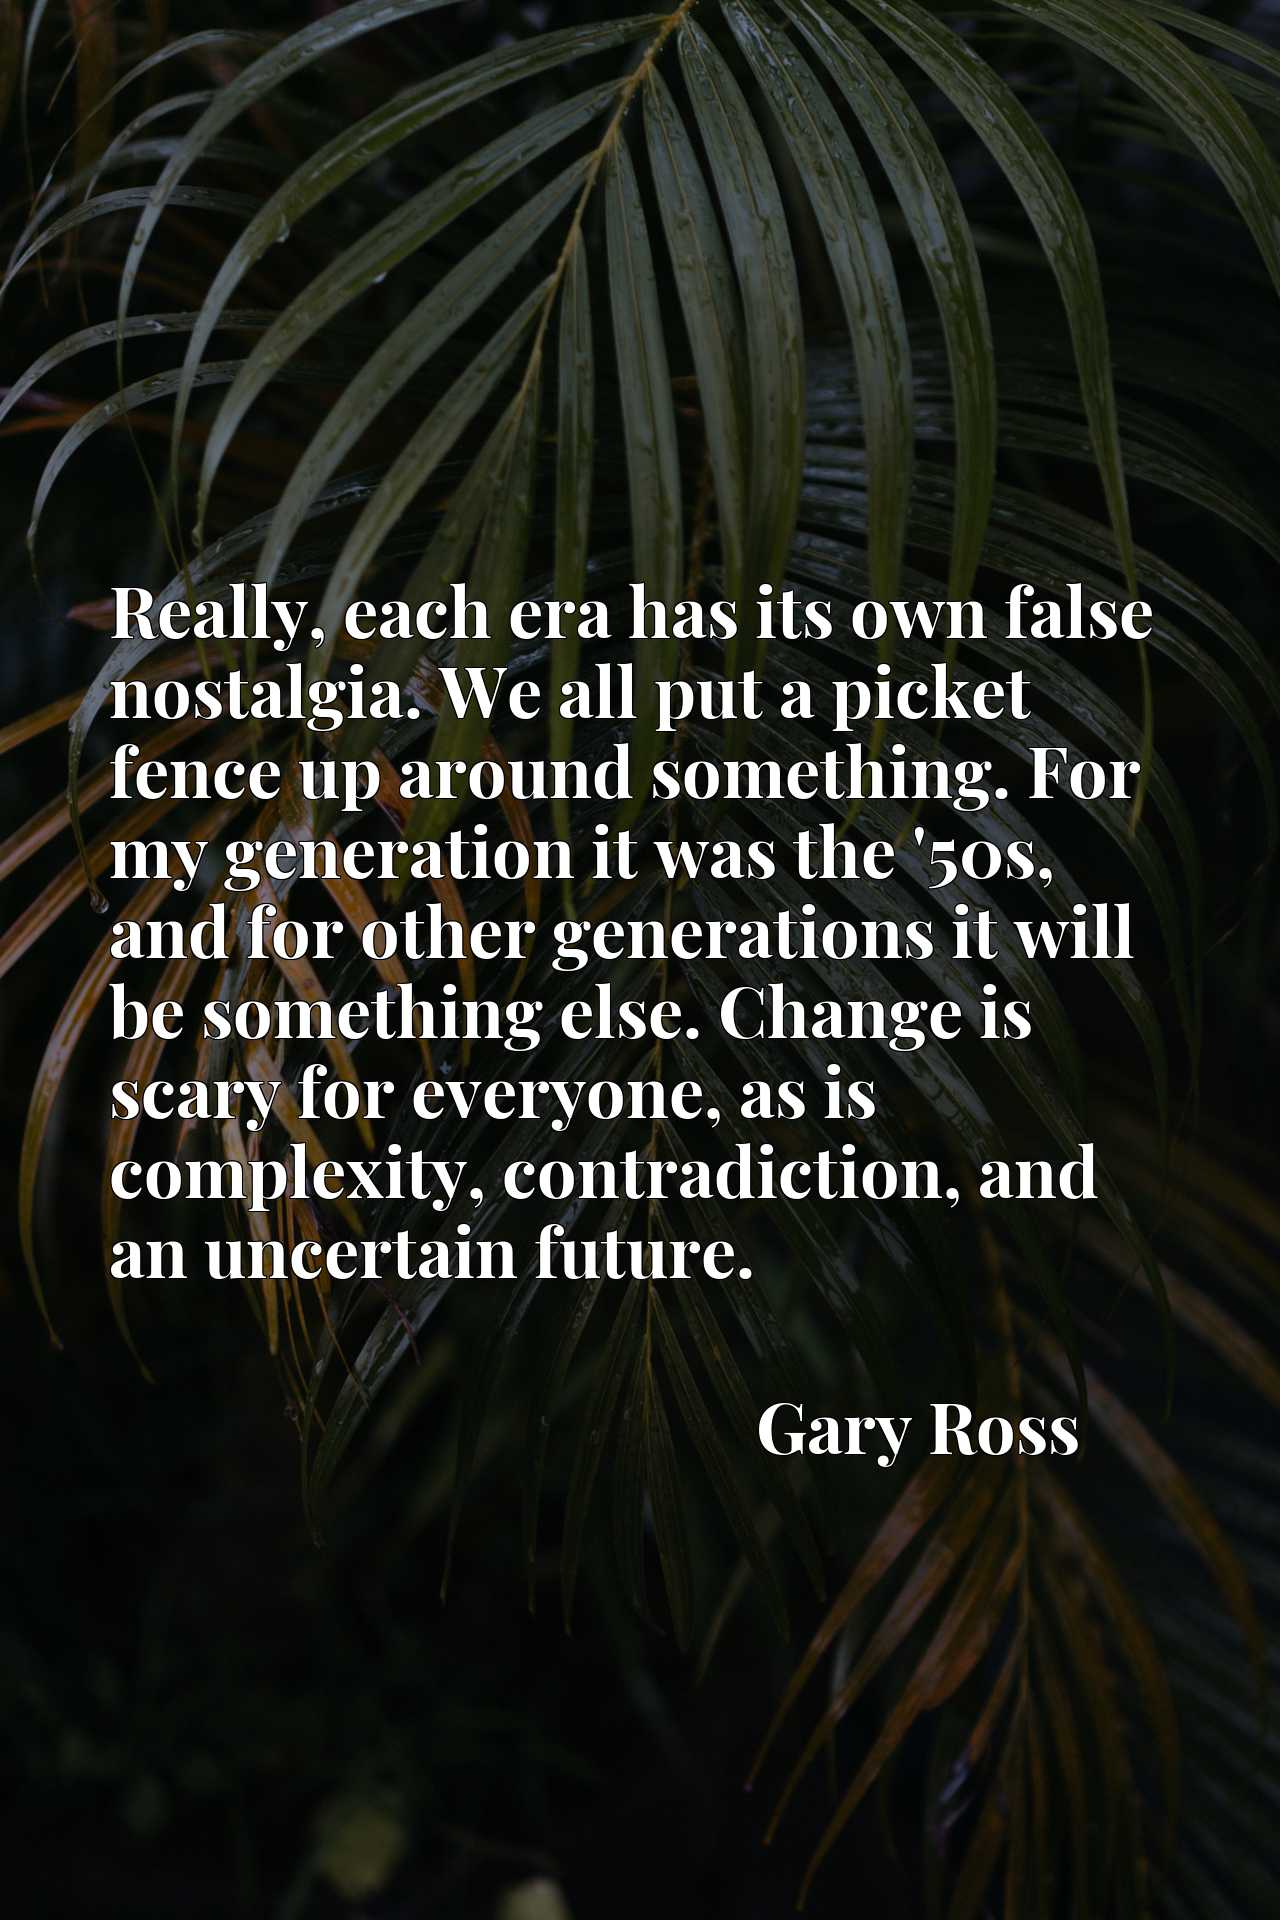 Really, each era has its own false nostalgia. We all put a picket fence up around something. For my generation it was the '50s, and for other generations it will be something else. Change is scary for everyone, as is complexity, contradiction, and an uncertain future.